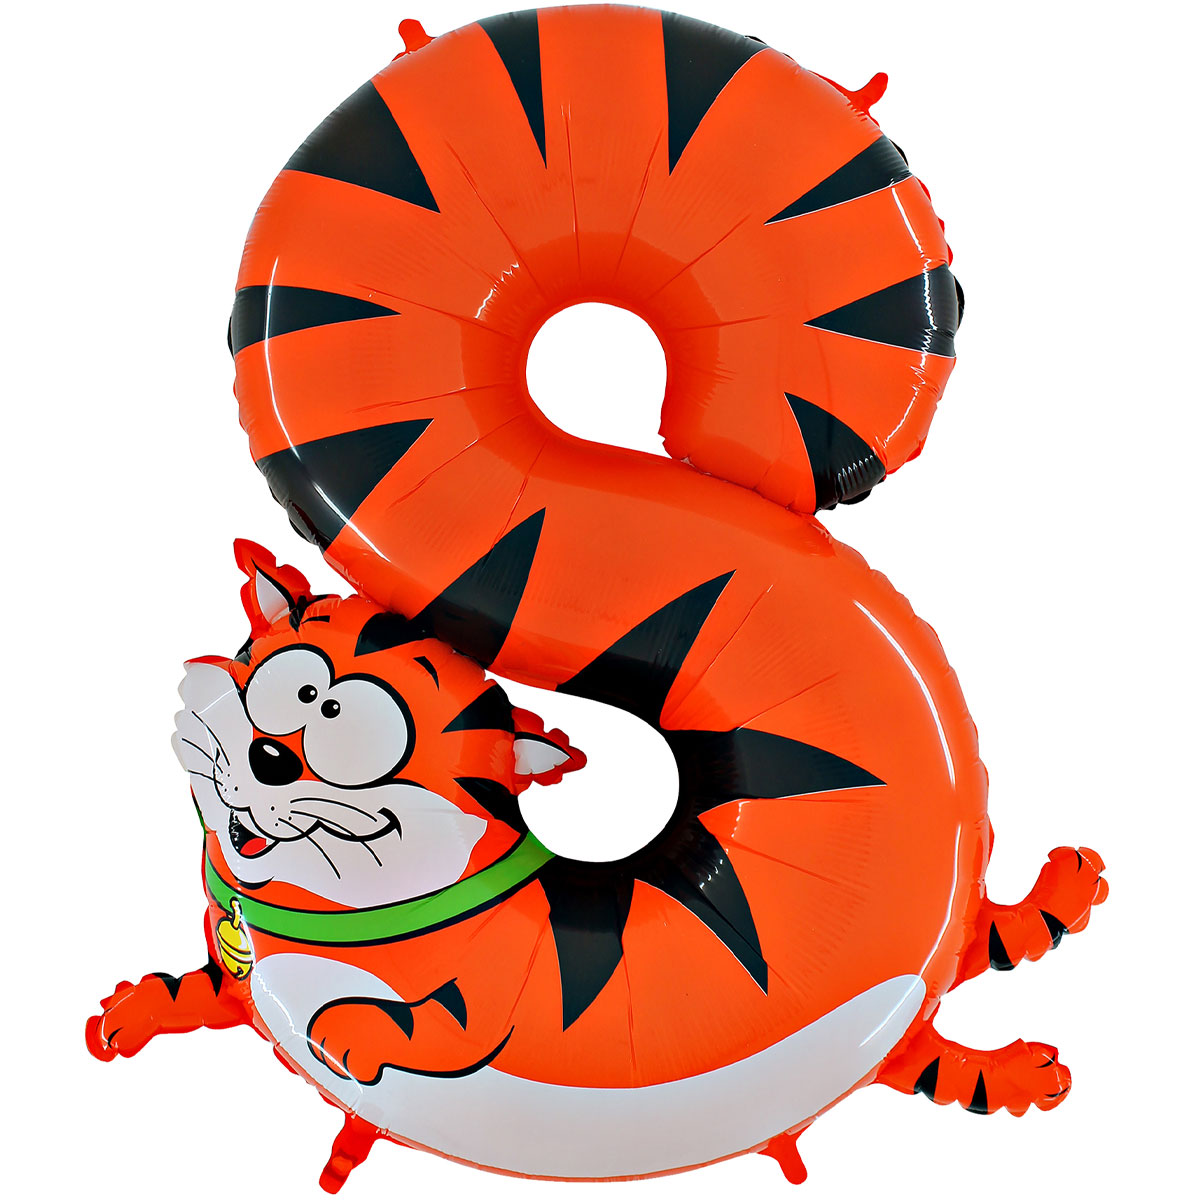 Festivitré Https Fournisseur Ballon Decoration.com Wp Content Uploads 2018 09 Animaloons 8 Cat